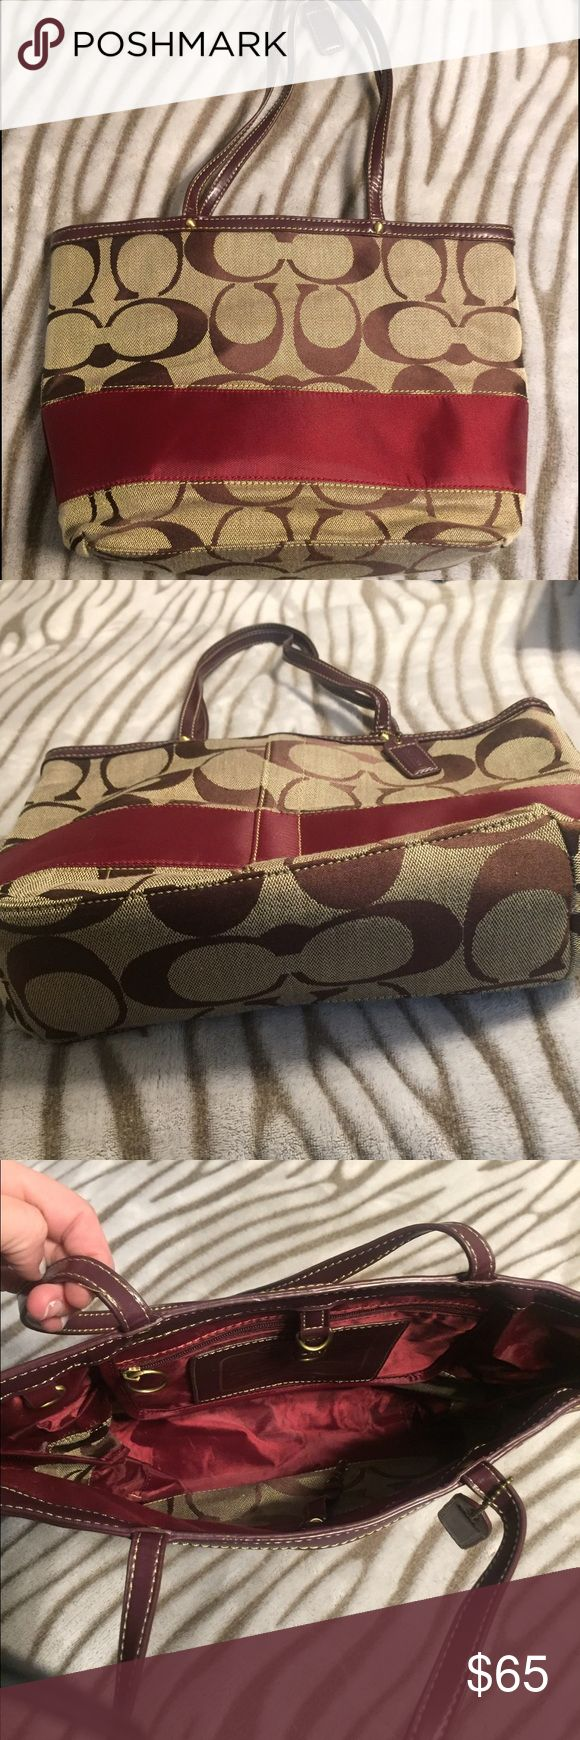 Coach tote bag Coach tote bag berry and brown excellent condition! Comes with box. I never used it it's been stored Coach Bags Totes